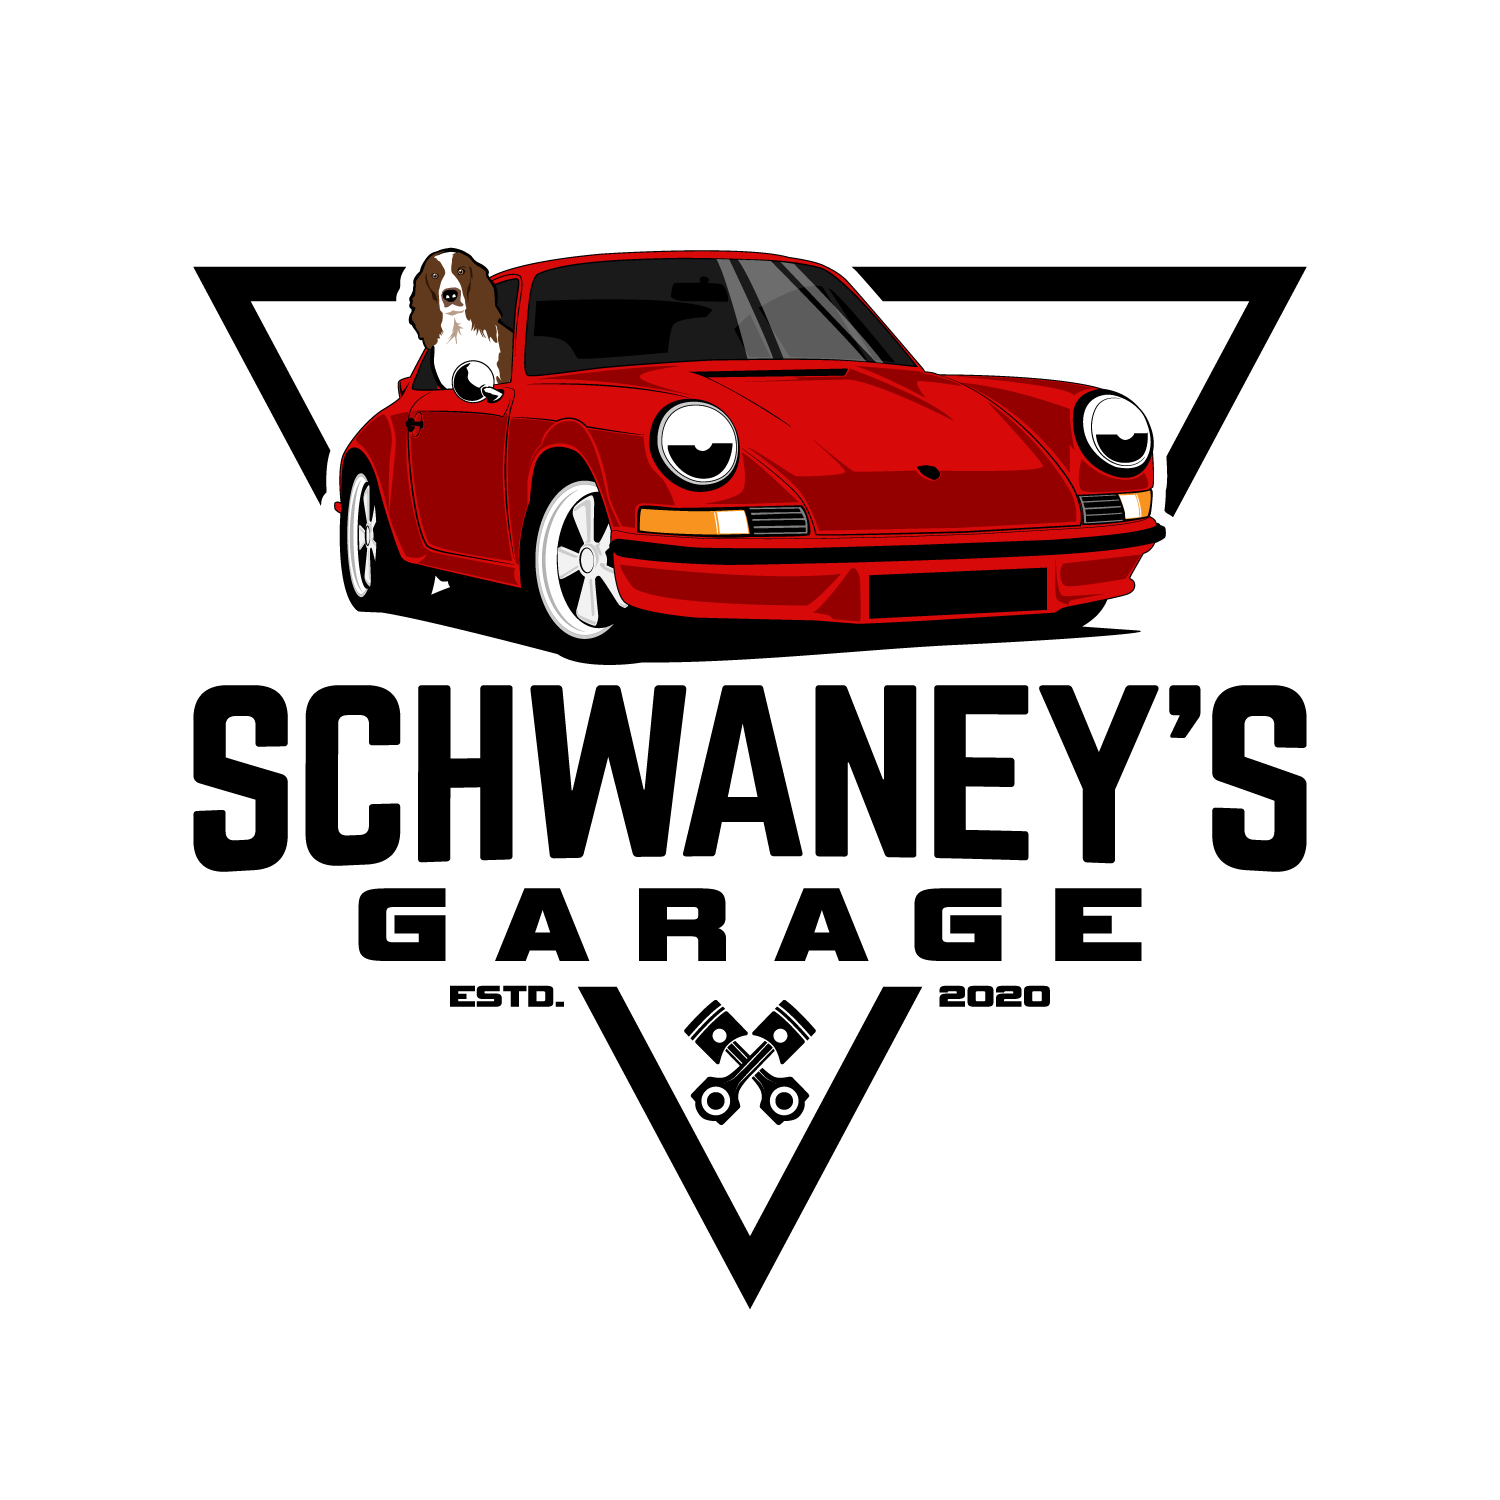 Help me design my classic car collection logo!